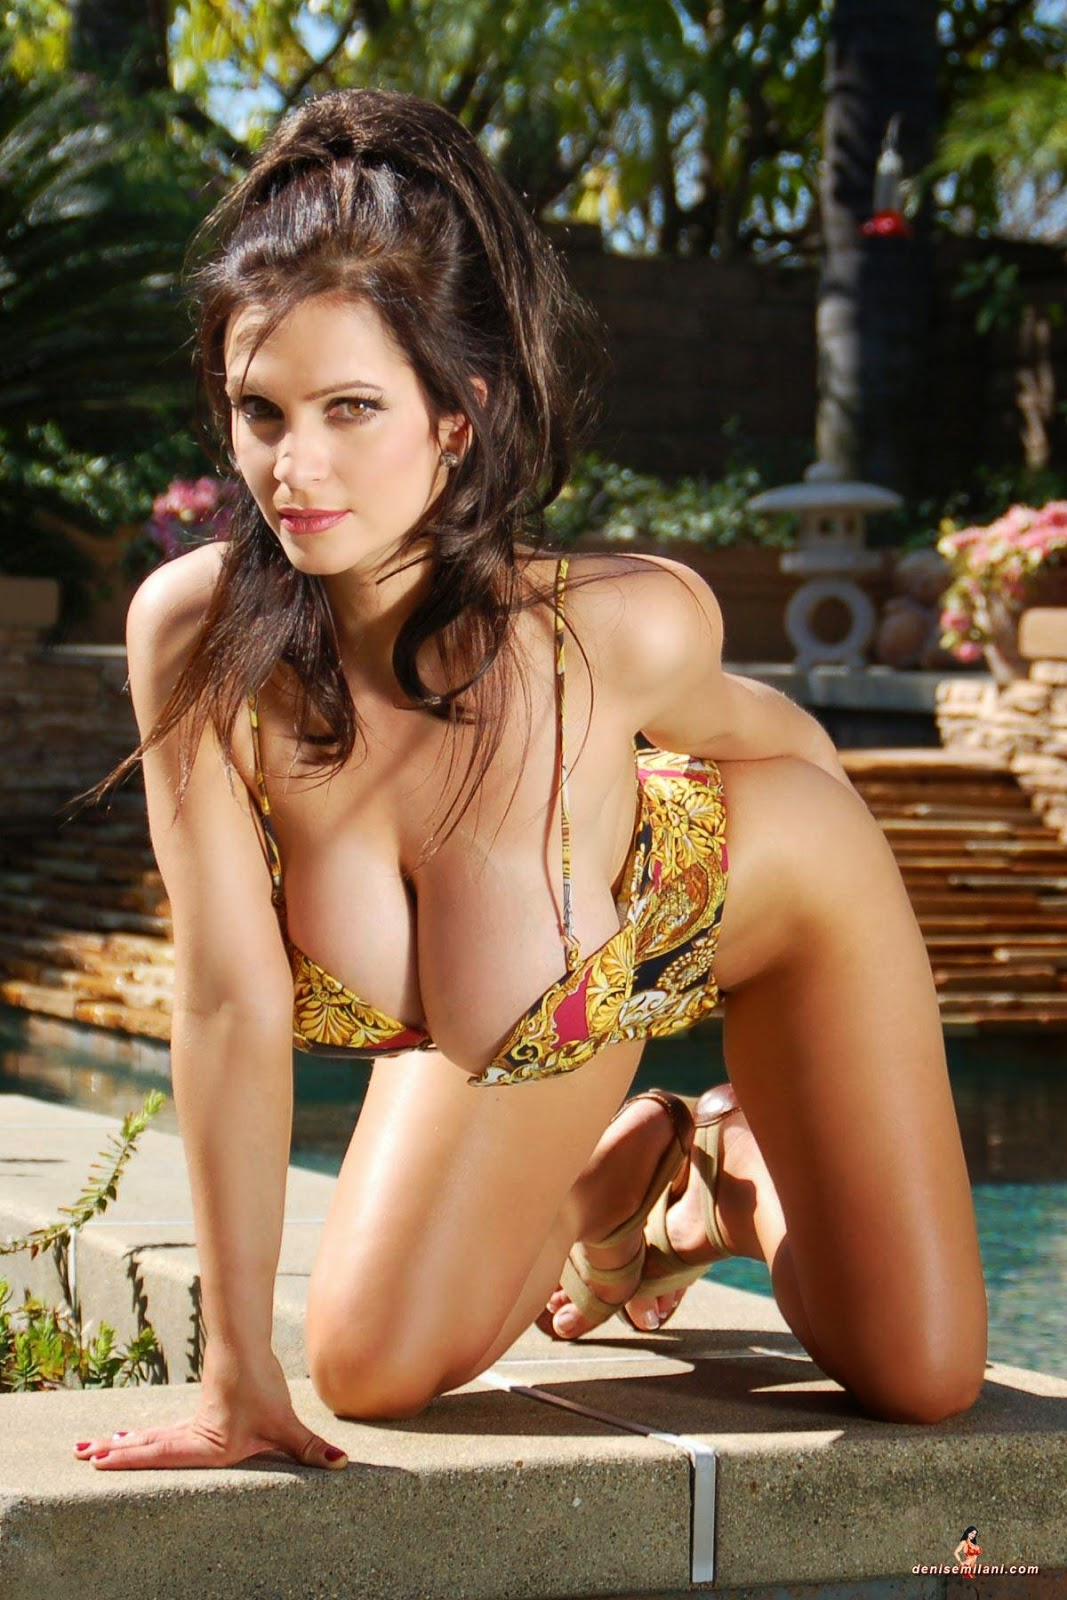 Set Baño Denise Milani Archives: Swimming Pool Set 2: Hot In